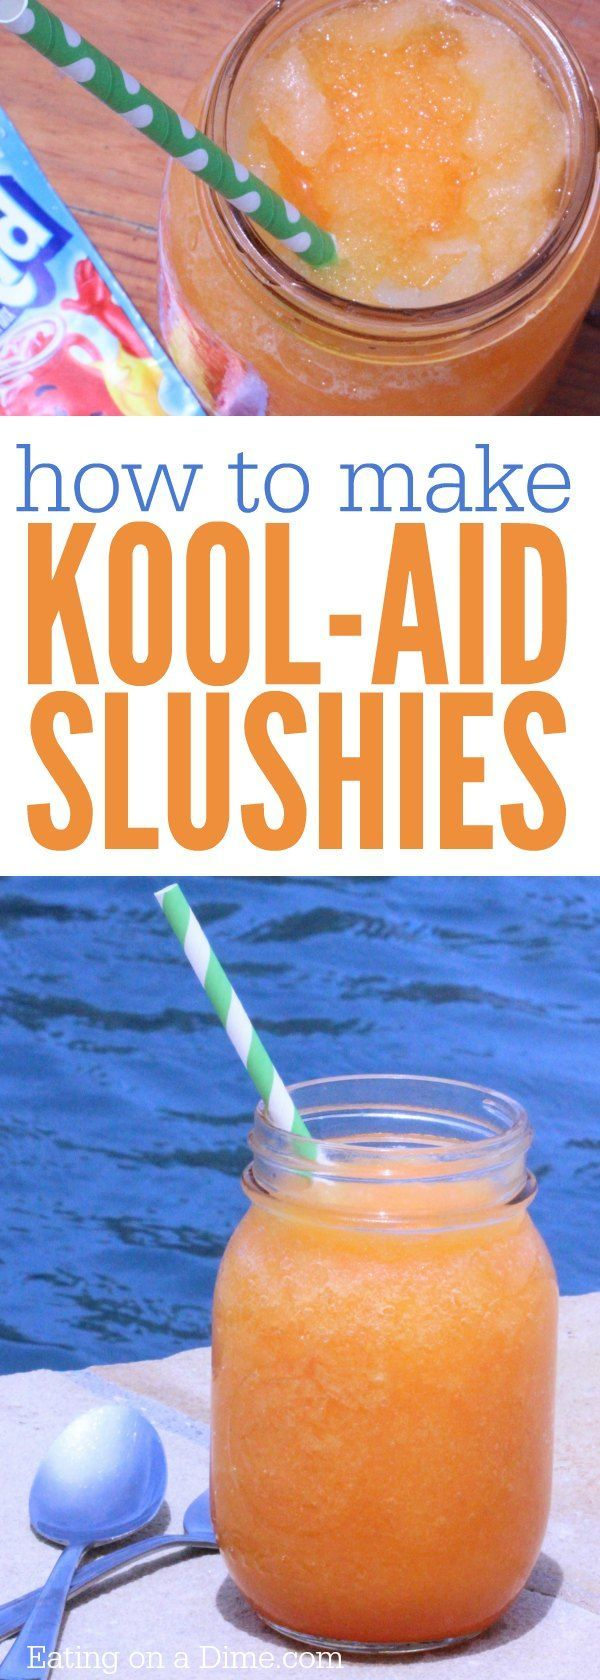 How to make a Slushie with Kool Aid mix. These kool aid slushies are fun for kids in the summer. This homemade slurpee recipe is easy to make. | https://lomejordelaweb.es/